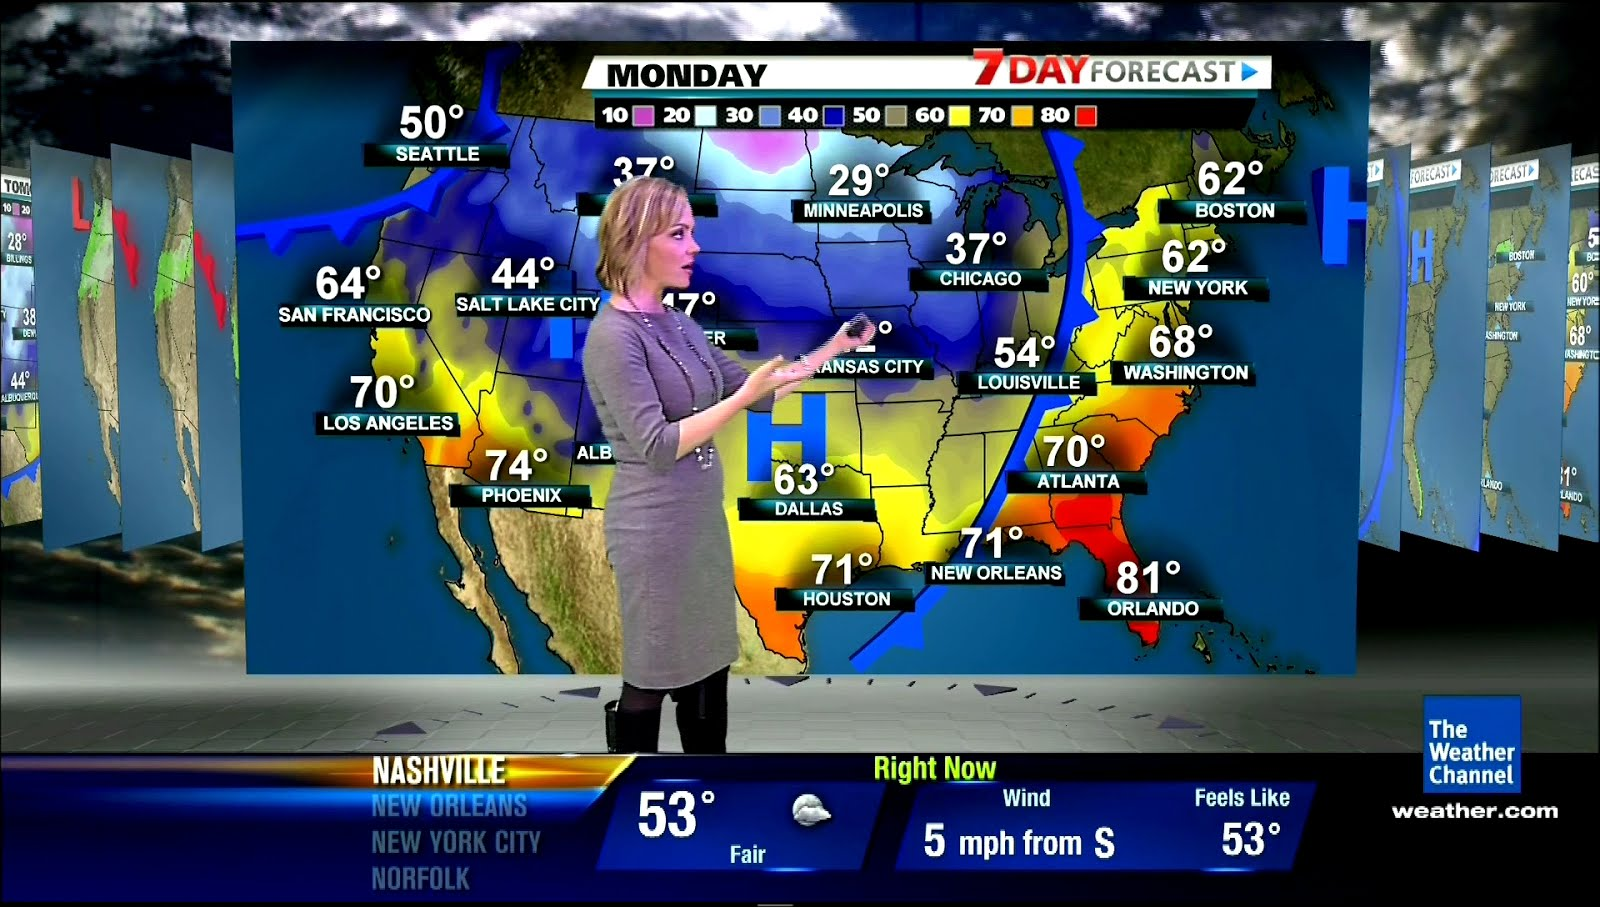 Alex Wilson Weather Channel Hot Channel weather be page 26 images